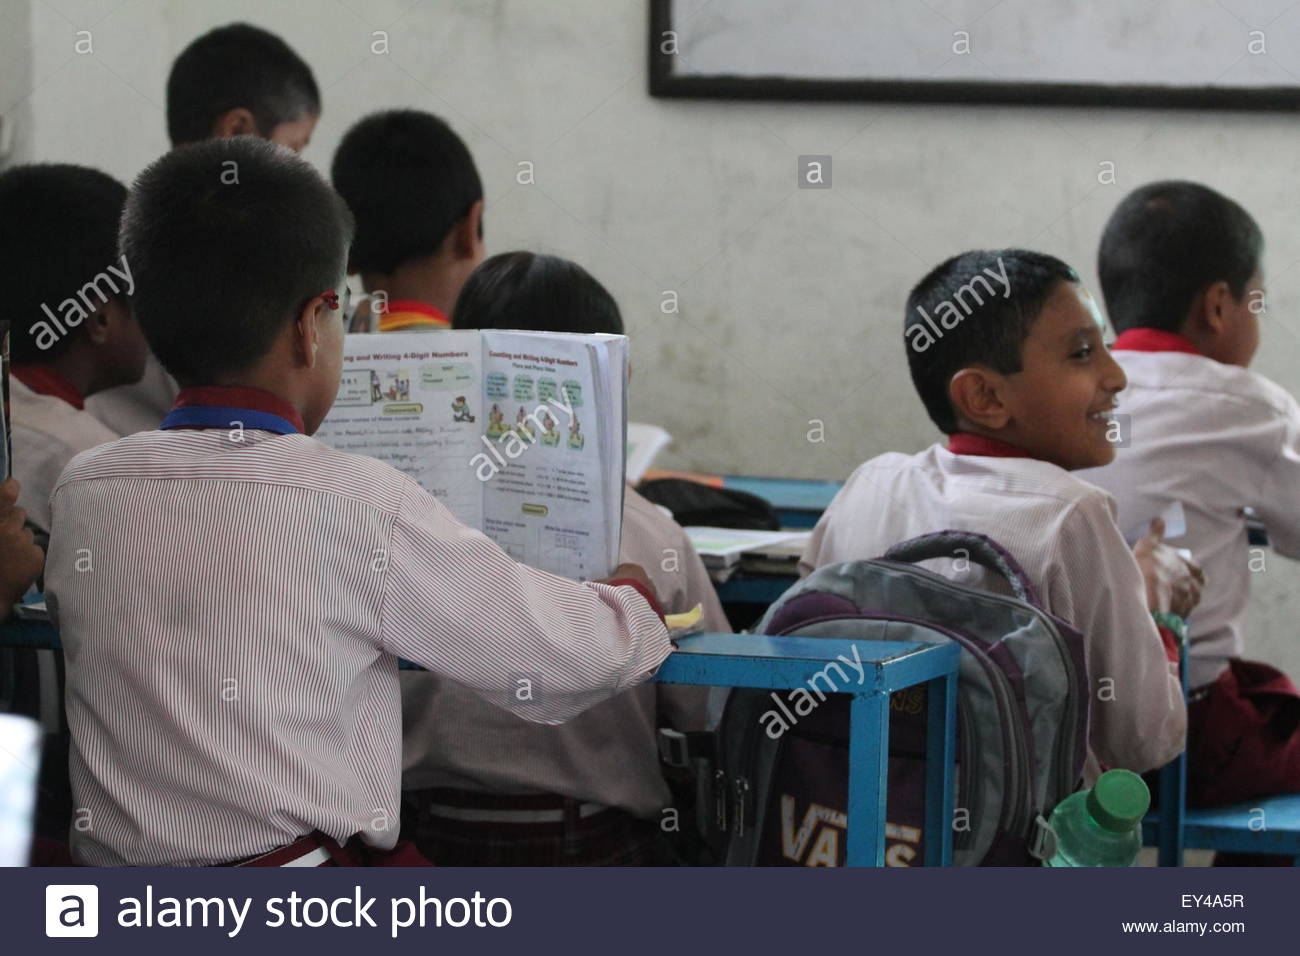 Bhaktapur, Nepal. July 20th, 2015. NEPAL, Bhaktapur:  A child reads a textbook in a classroom at Candid International - Stock Image